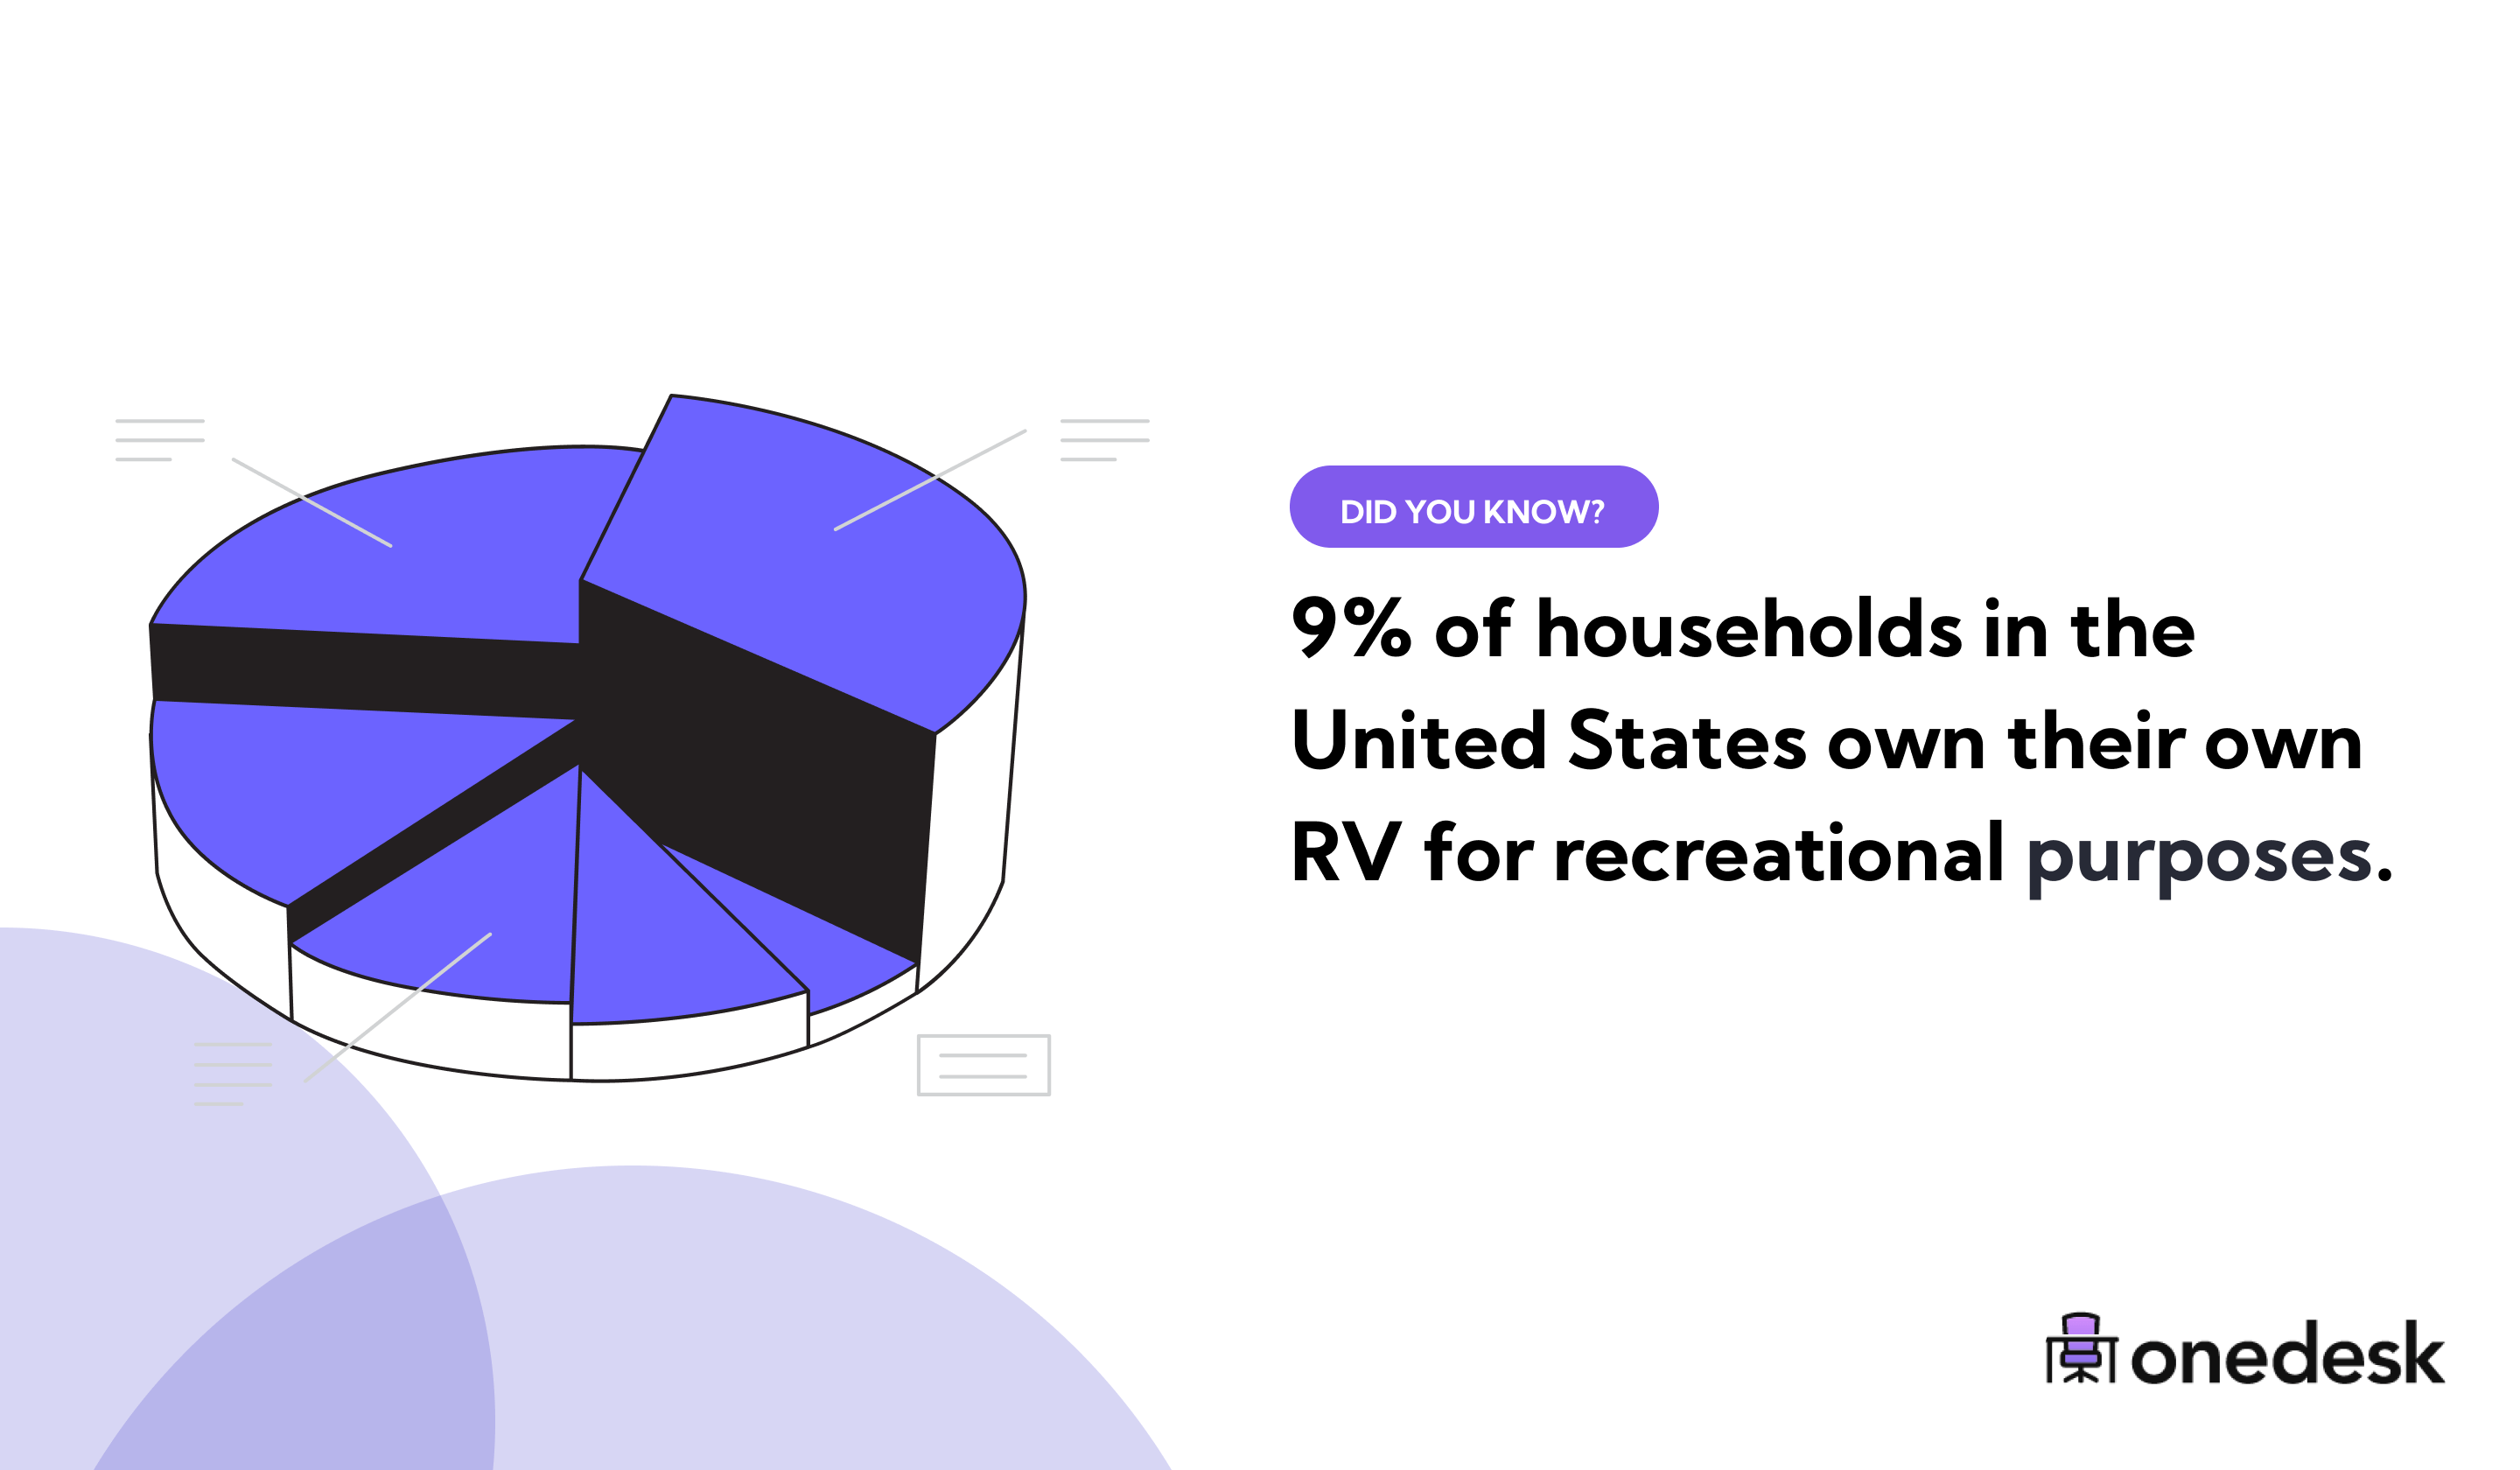 percent of U.S. households that own an RV